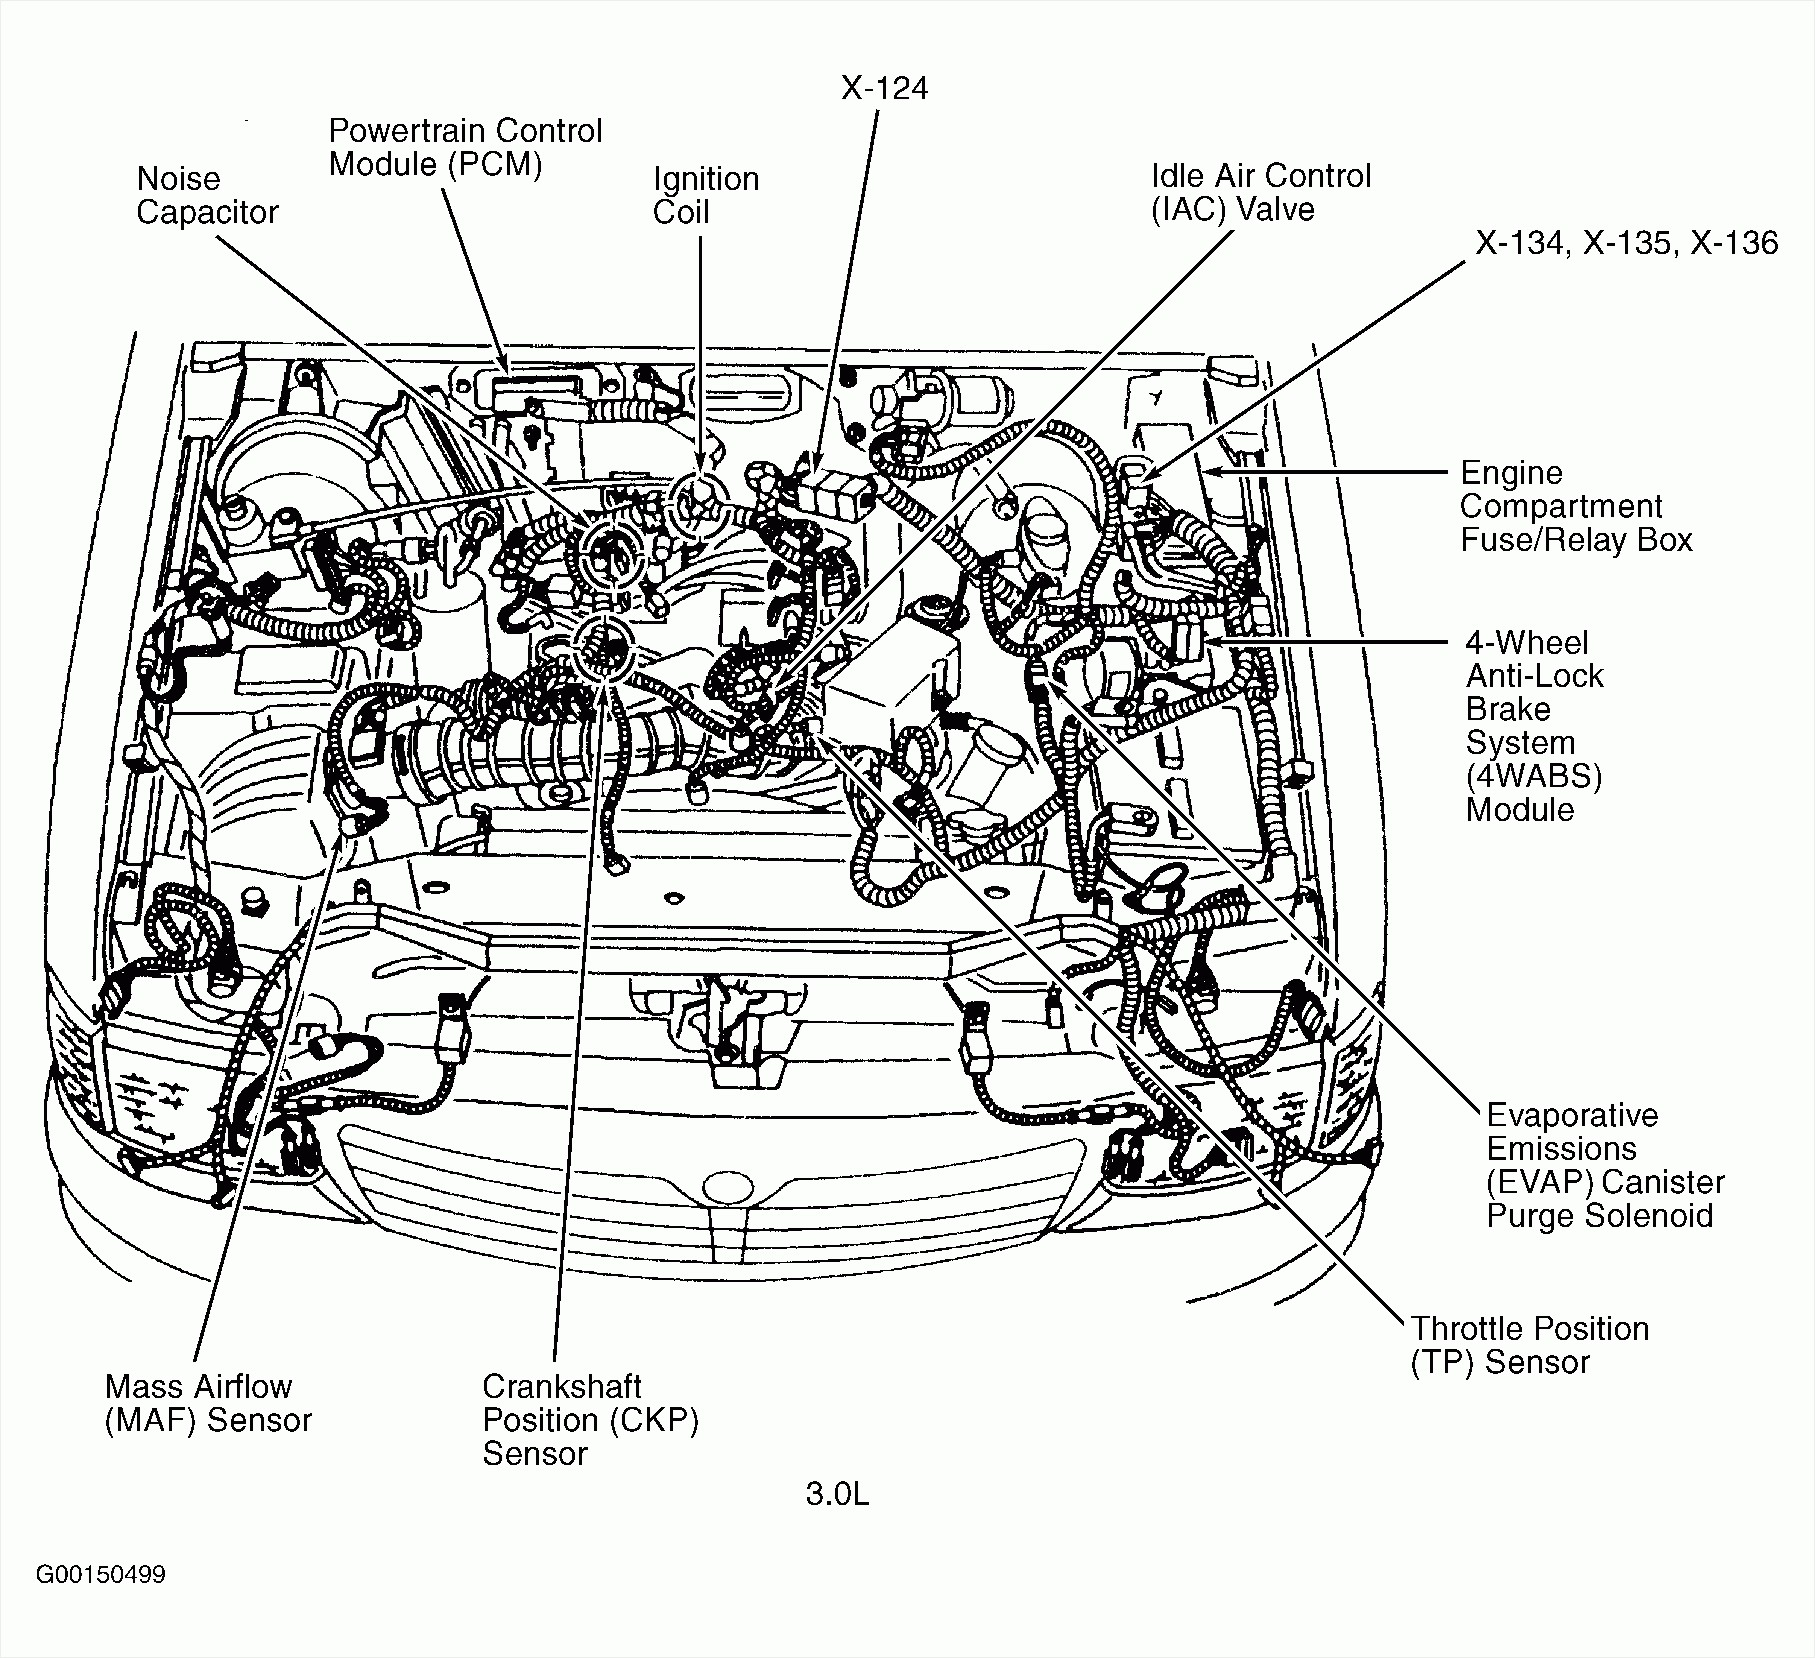 hight resolution of detoxicrecenze com wp content uploads 2018 05 2003 1998 vw jetta 2 0 engine diagram 1998 volkswagen jetta engine diagram